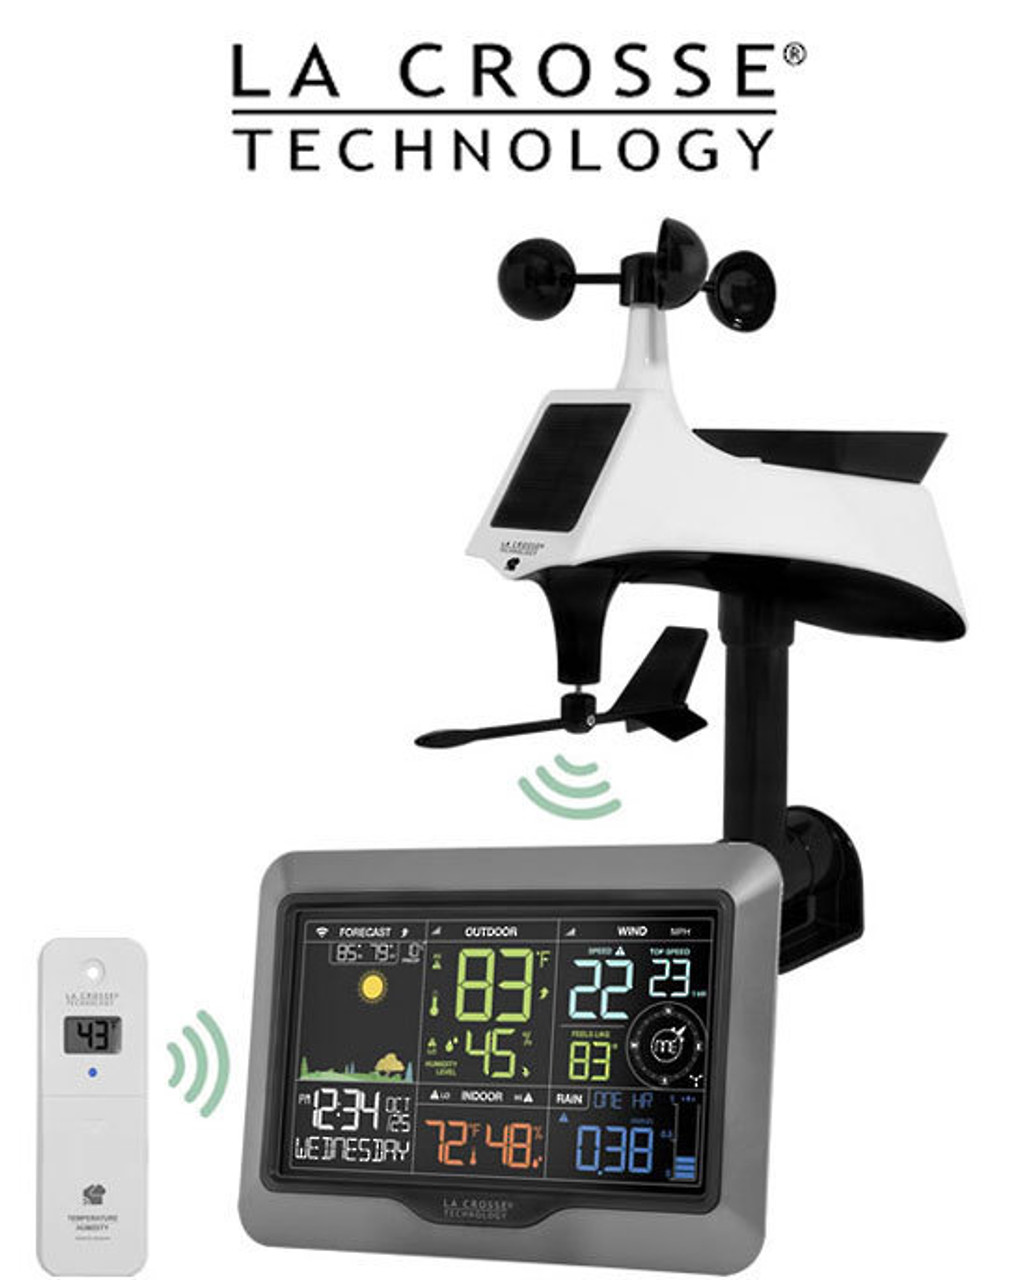 La Crosse V40-PRO WiFi Professional Colour Weather Station